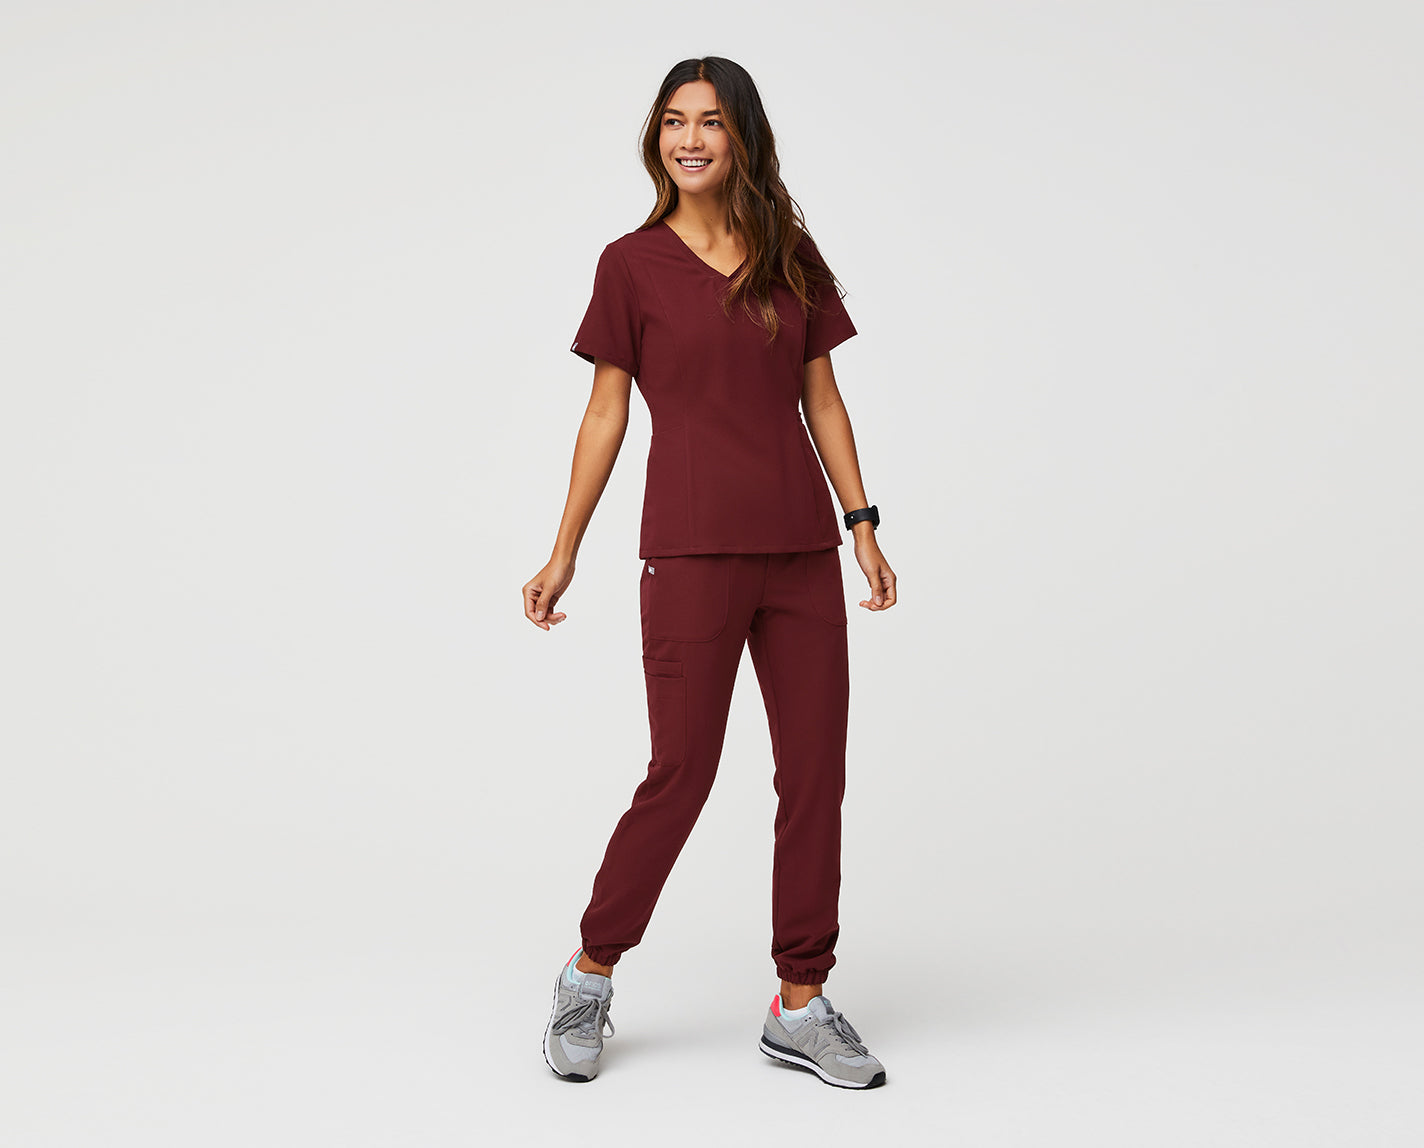 You're basically royalty. The Amapa Slim V-Neck features princess seams for some flattering shape accentuation, while the slim fit and v-neck create a modern look. We also added four pockets for quick and easy access to everything you need (and like) to carry with you all day.